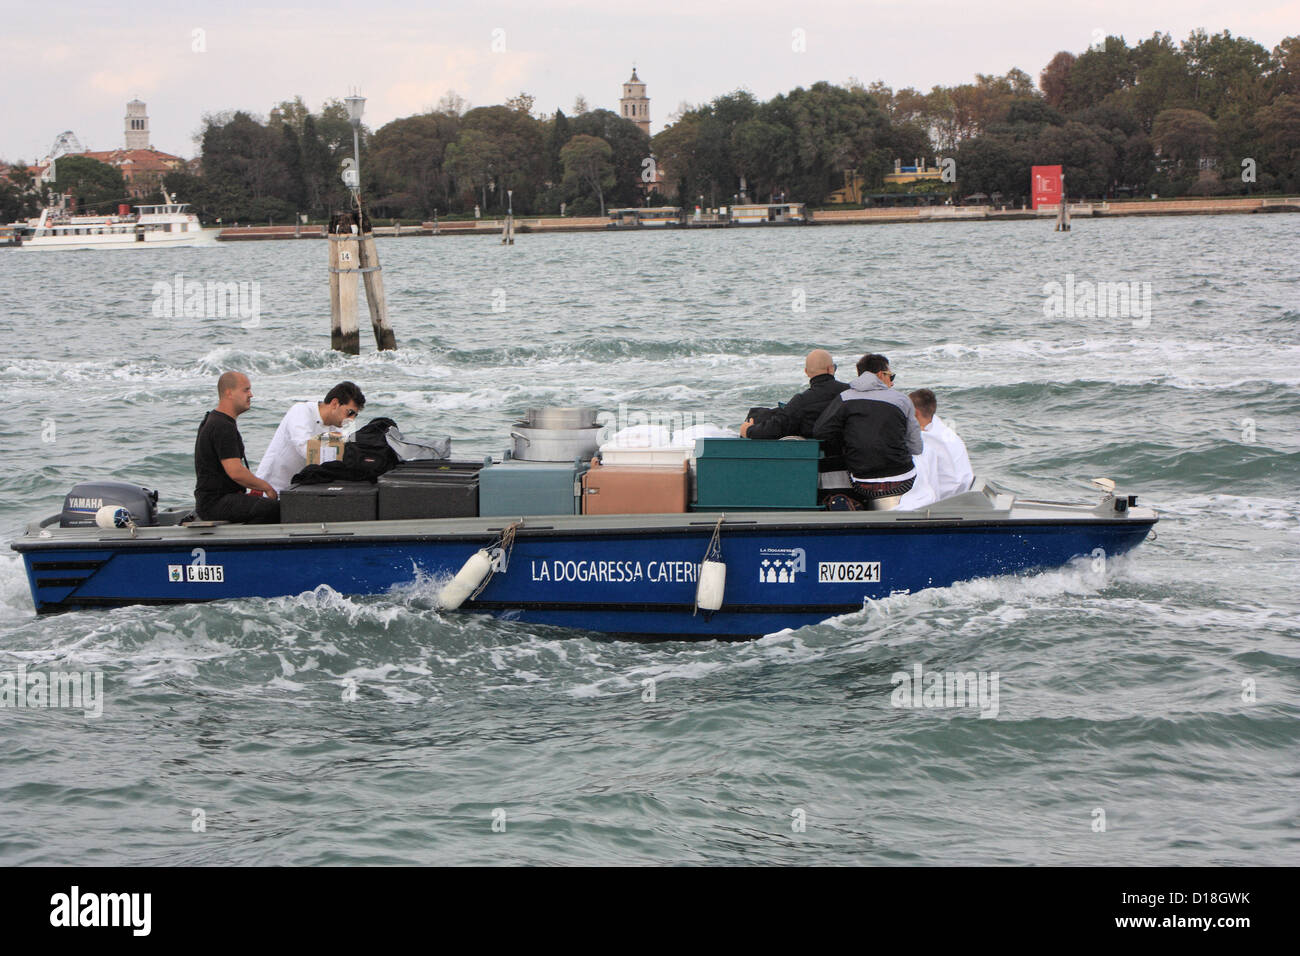 Catering service on the way to Isola di San Servolo. - Stock Image